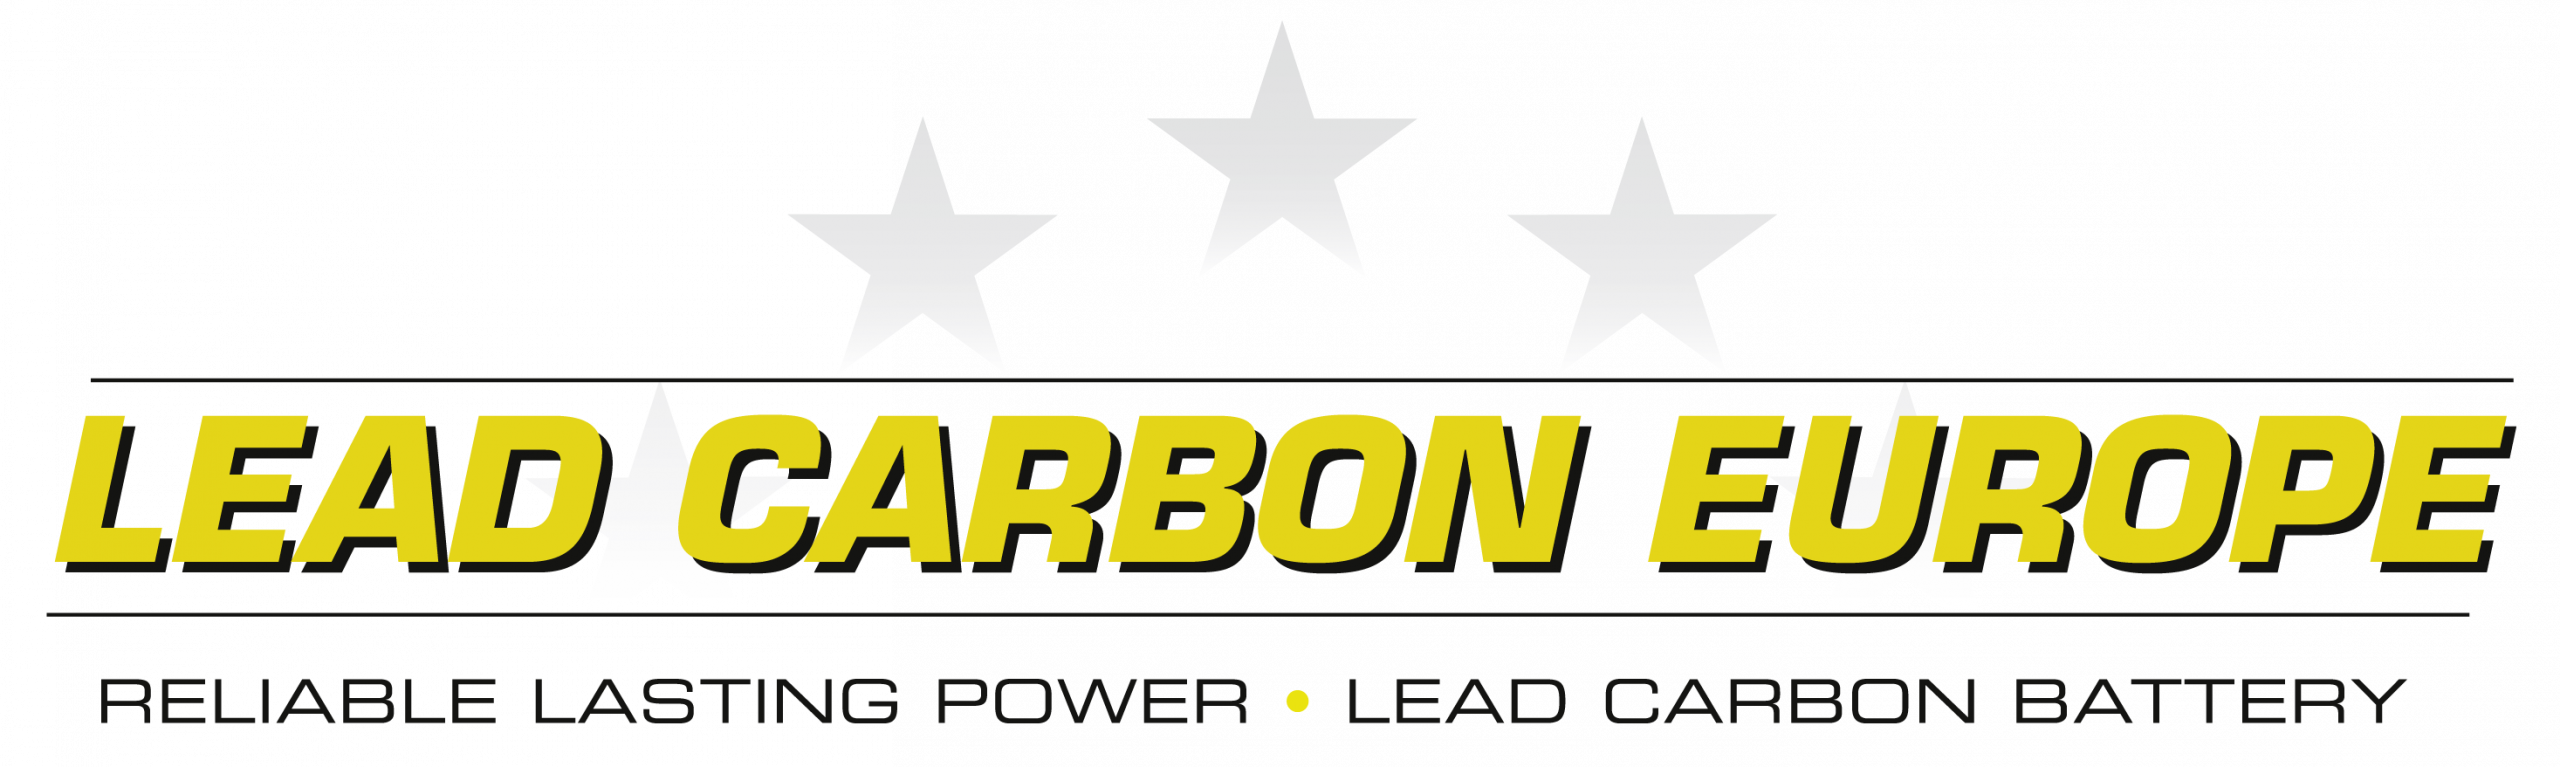 Lead Carbon Europe